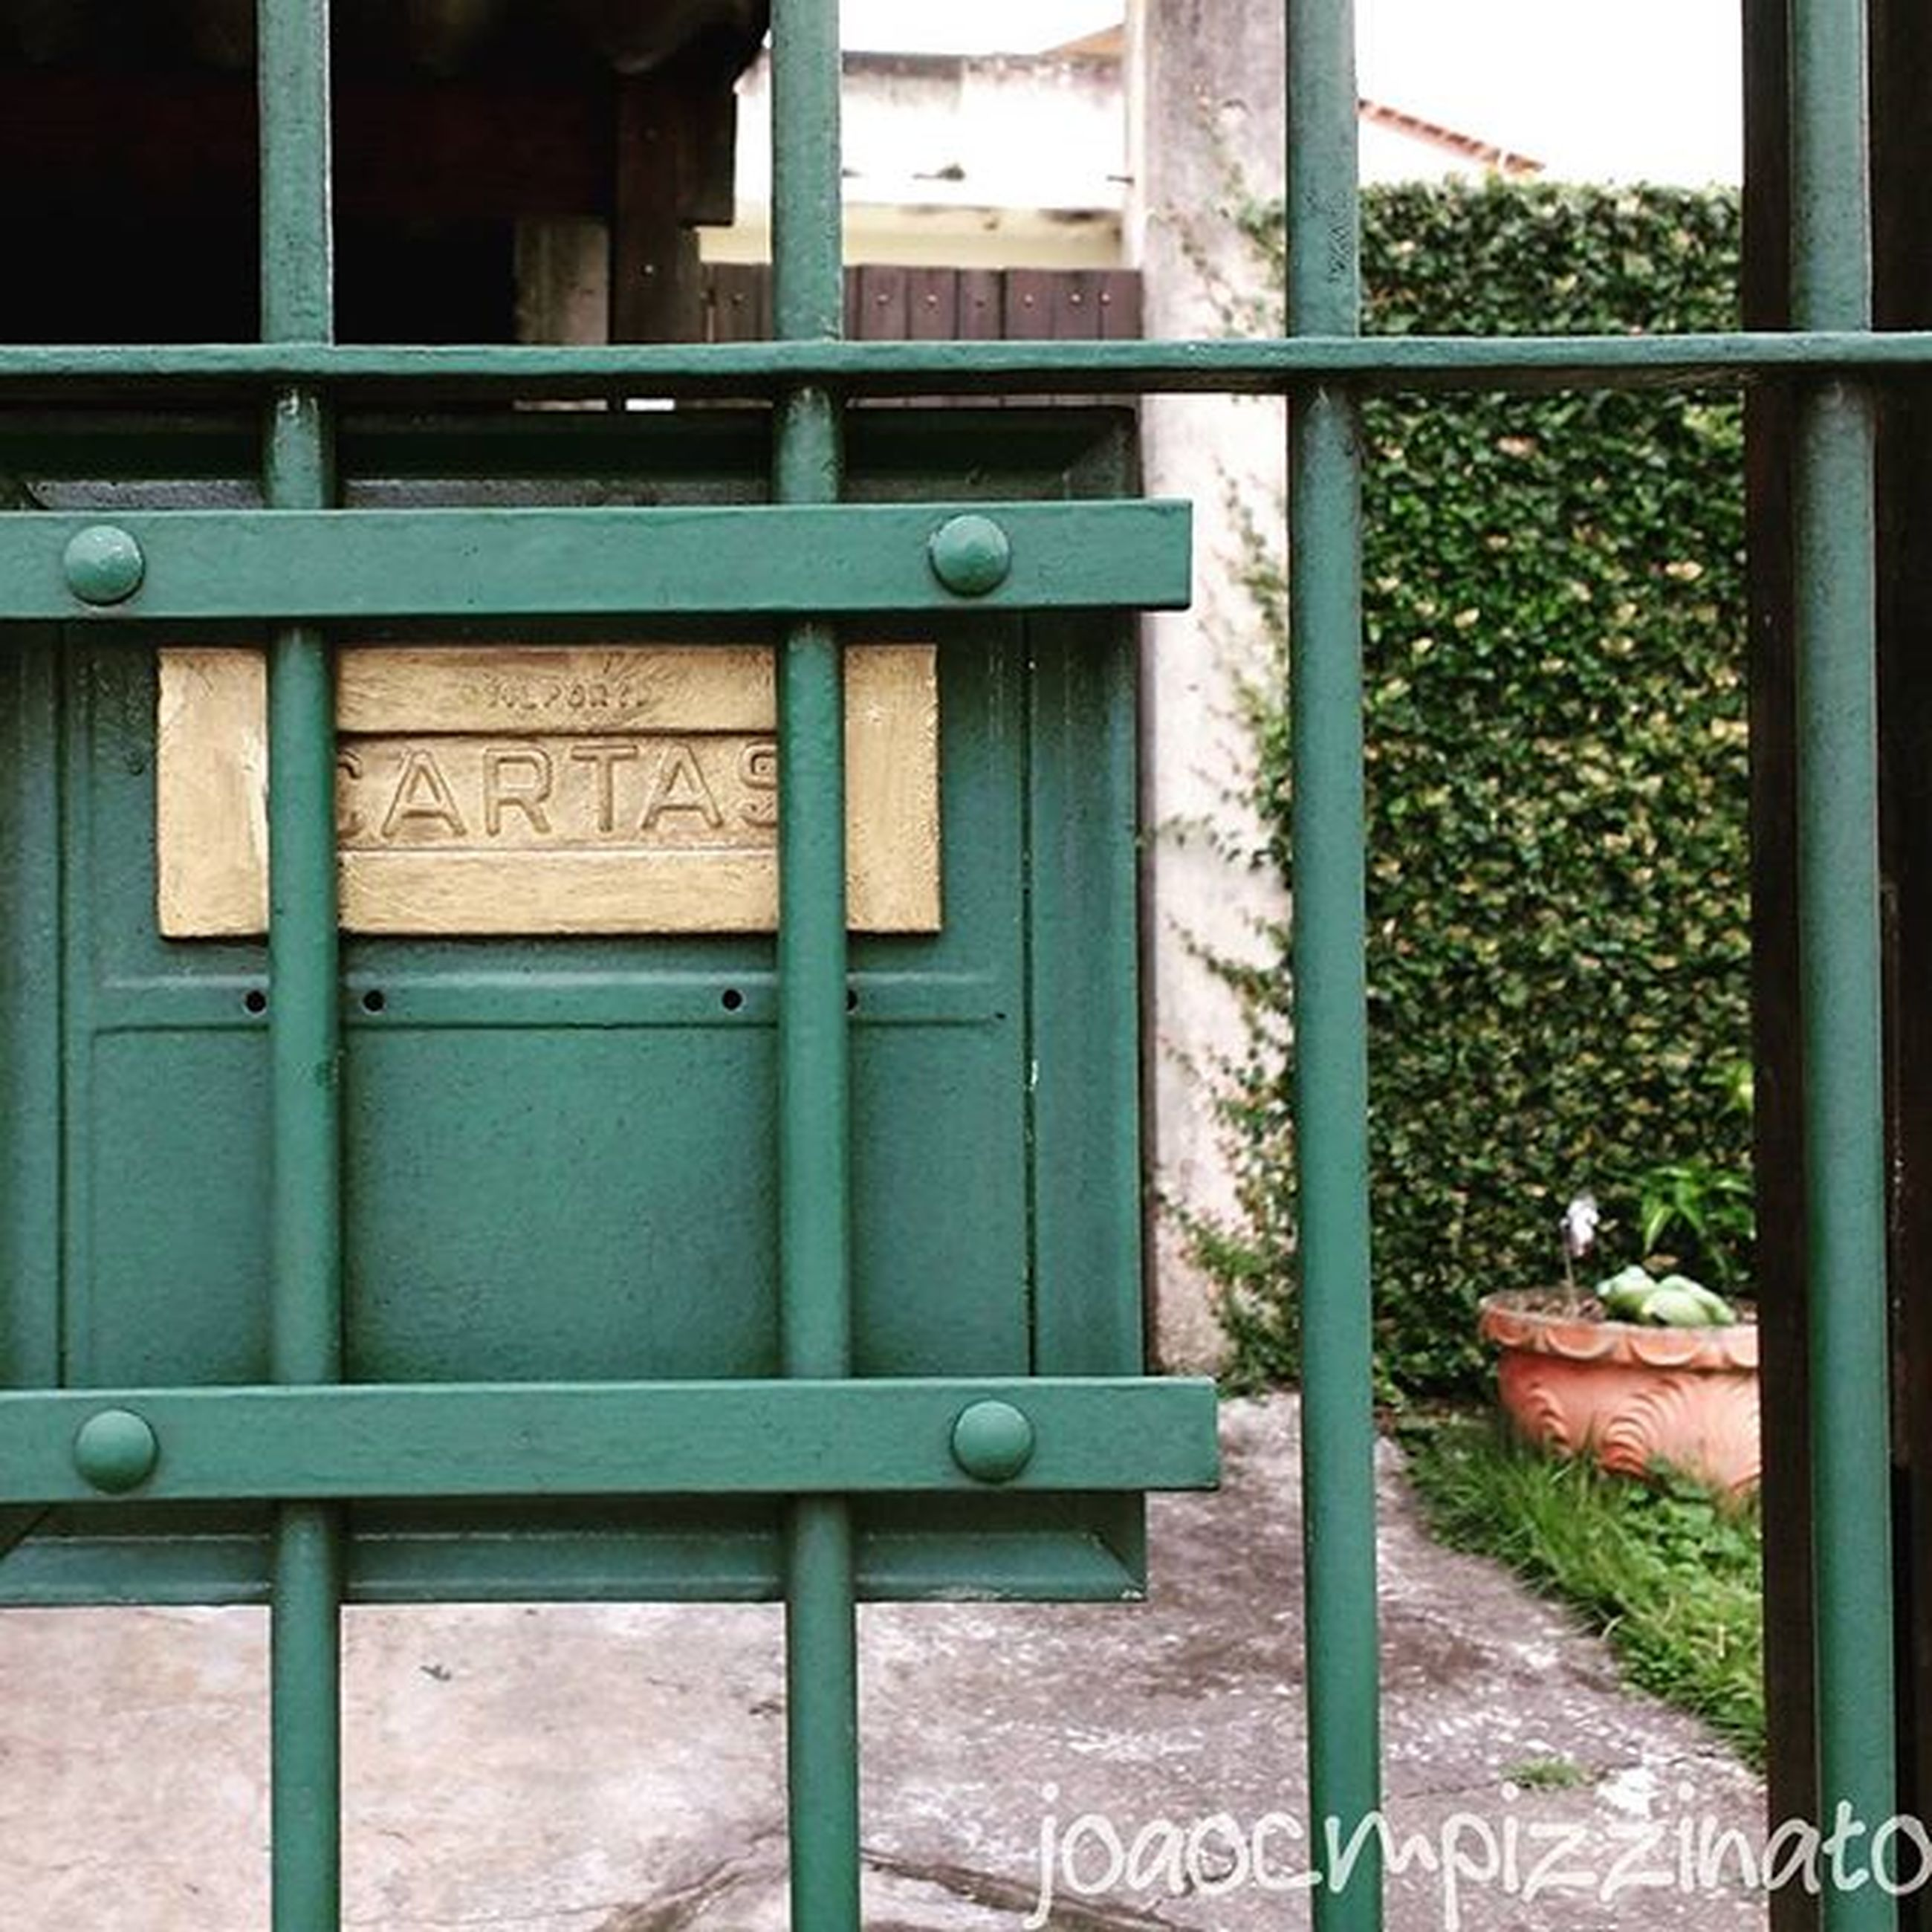 metal, closed, door, text, safety, security, protection, metallic, communication, western script, old, gate, wood - material, fence, no people, built structure, day, entrance, close-up, window